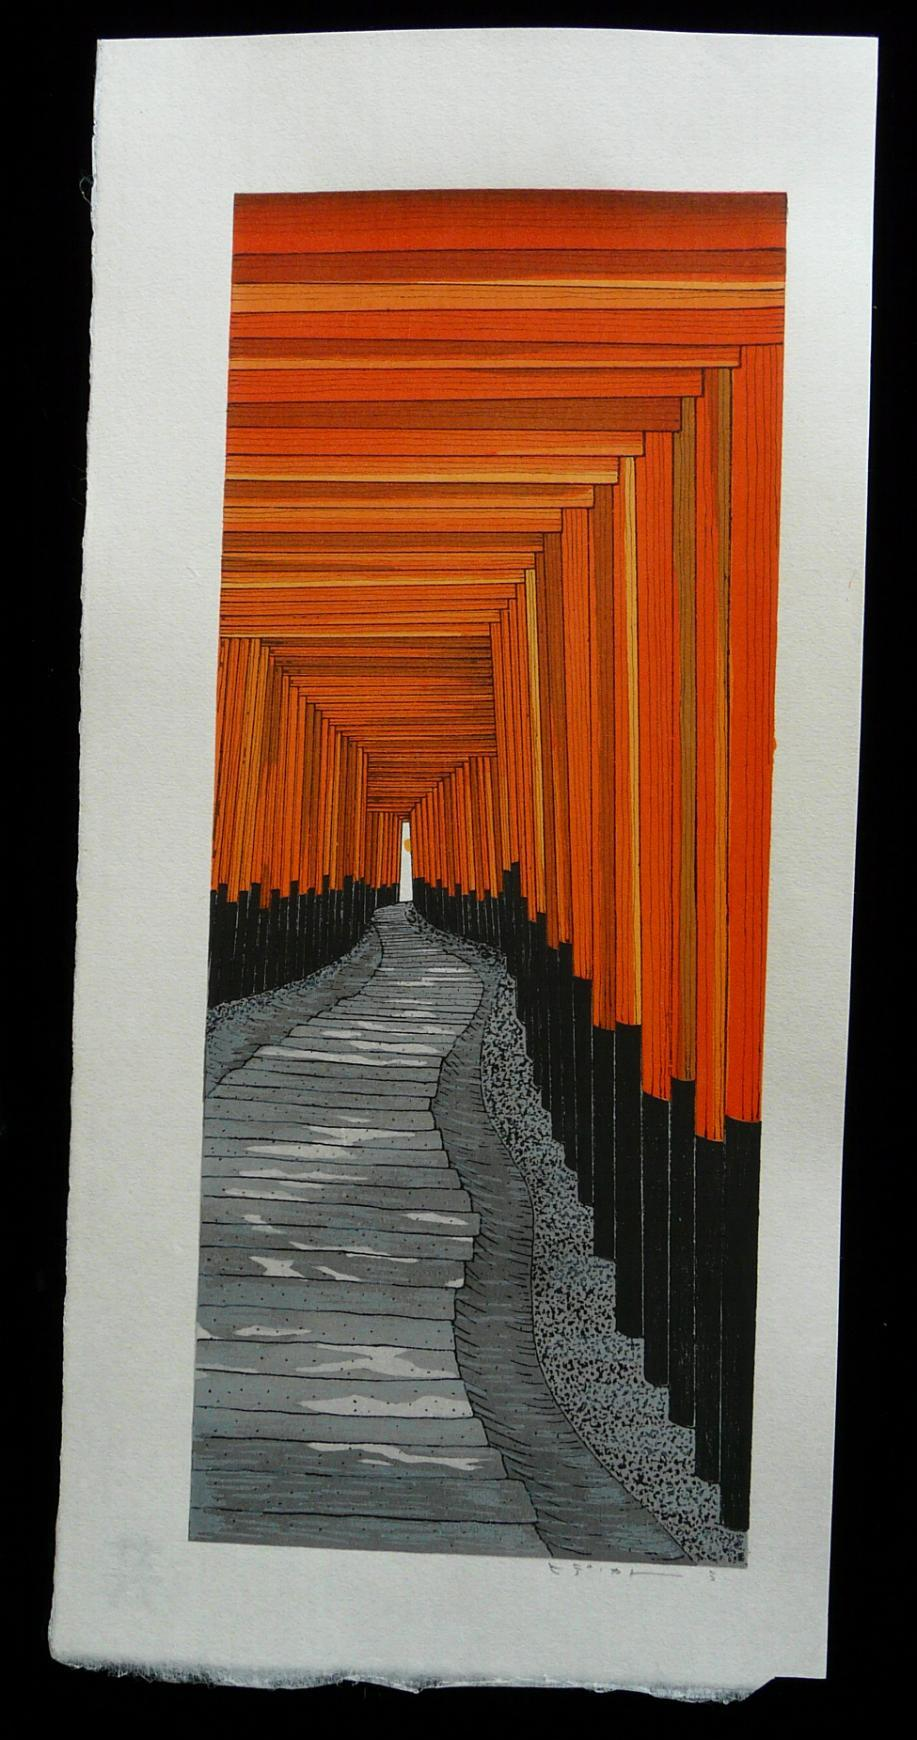 TERUHIDE KATO: #P4211 FUSHIMI INARI SHRINE IN KYOTO